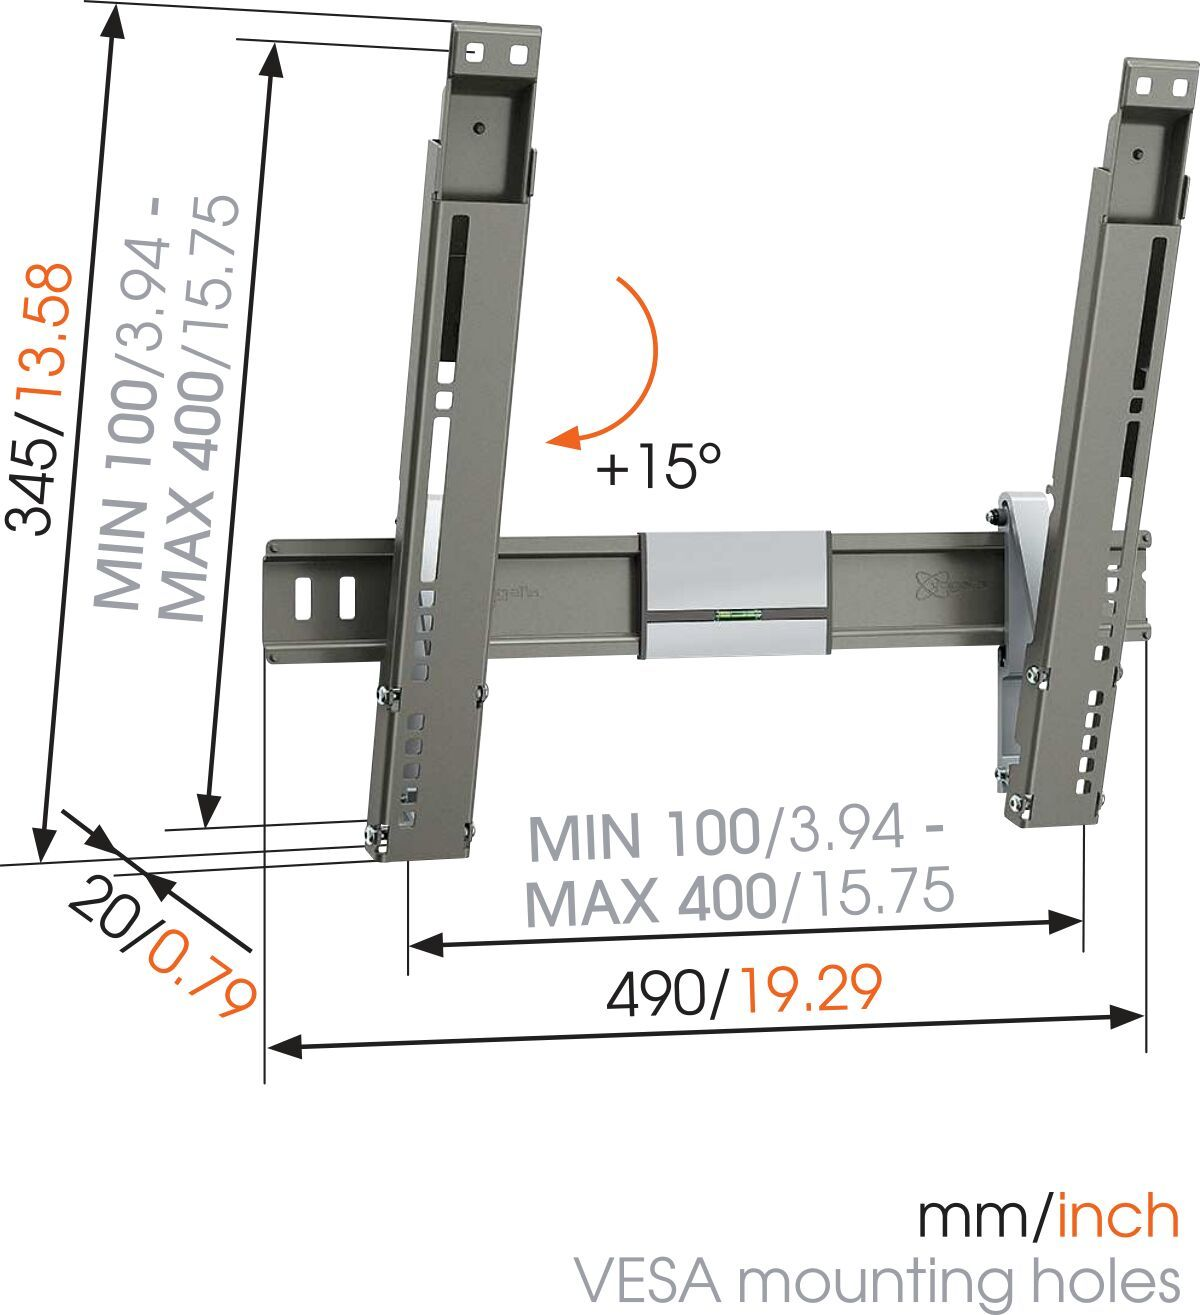 Vogel's THIN 215 UltraThin Tilting TV Wall Mount - Suitable for 26 up to 55 inch TVs up to 18 kg - Tilt up to 15° - Dimensions